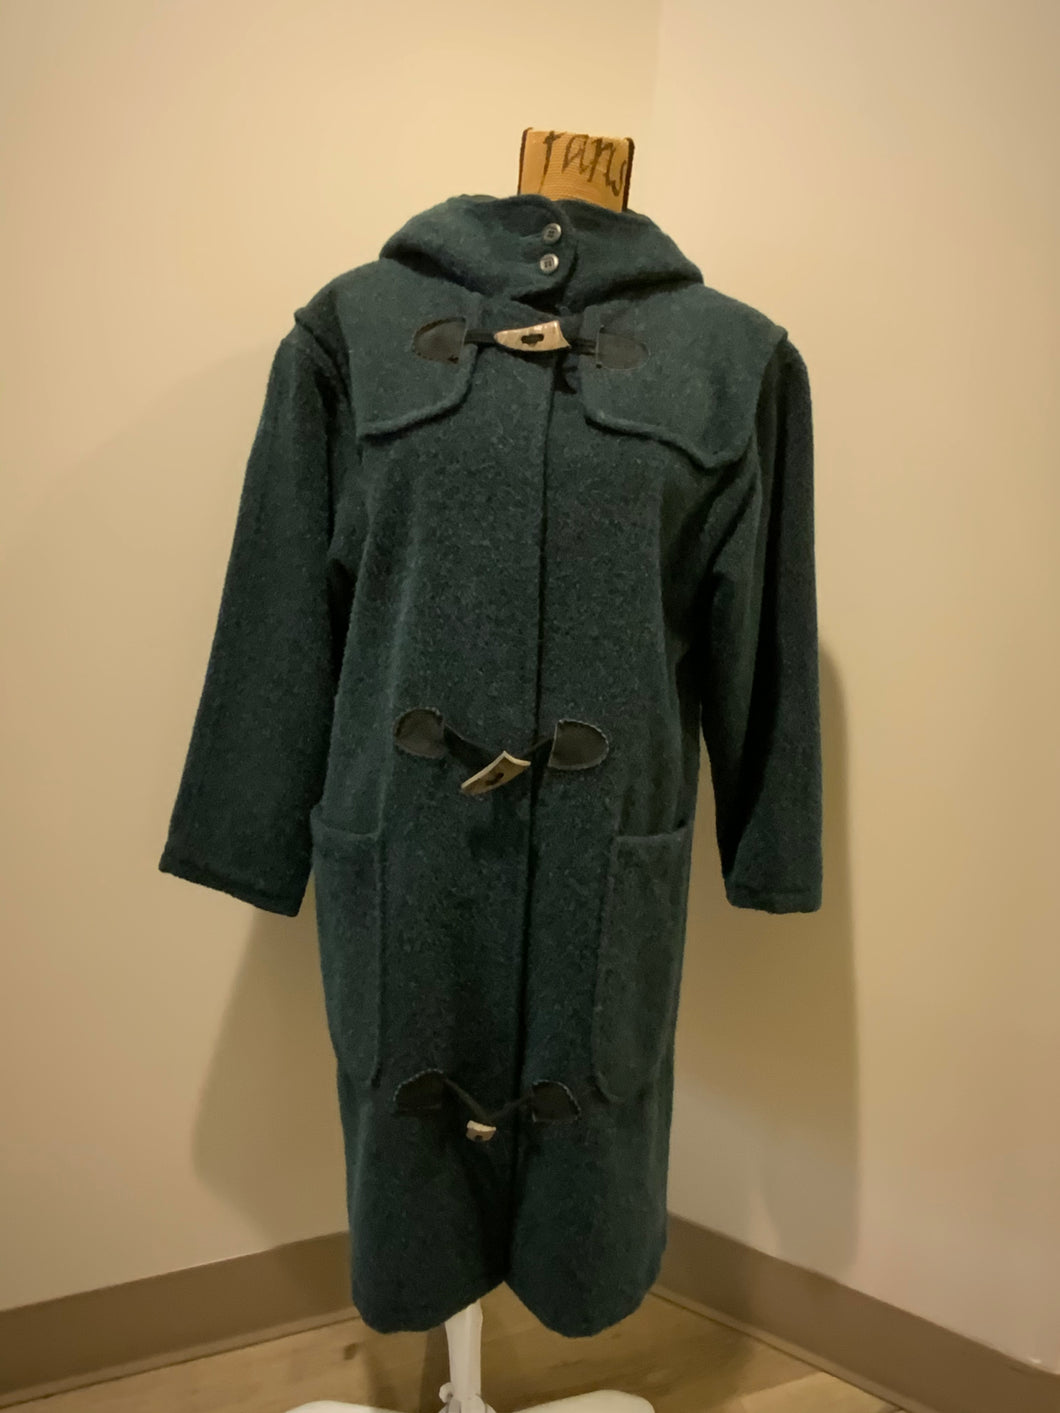 """The Woolrich Woman"" dark teal wool and mohair blend duffle coat with hood, pockets, three wooden toggles, inside snaps and a leather Woolrich label. Made in the USA. Fits a size small."